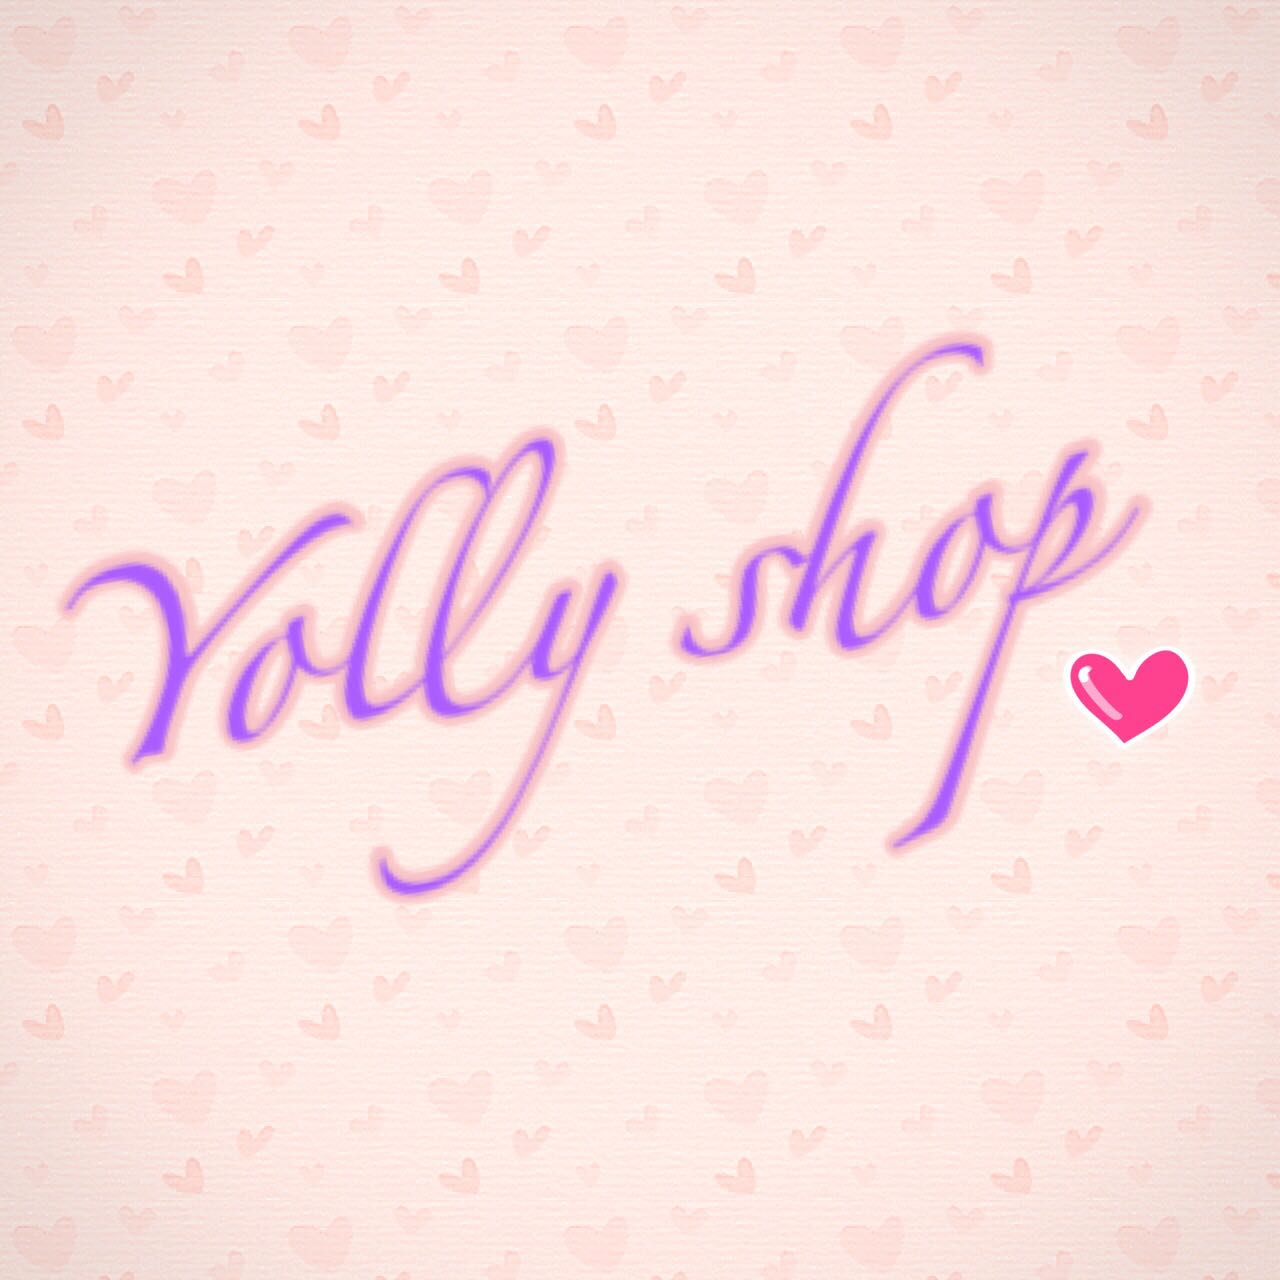 yolly.shop